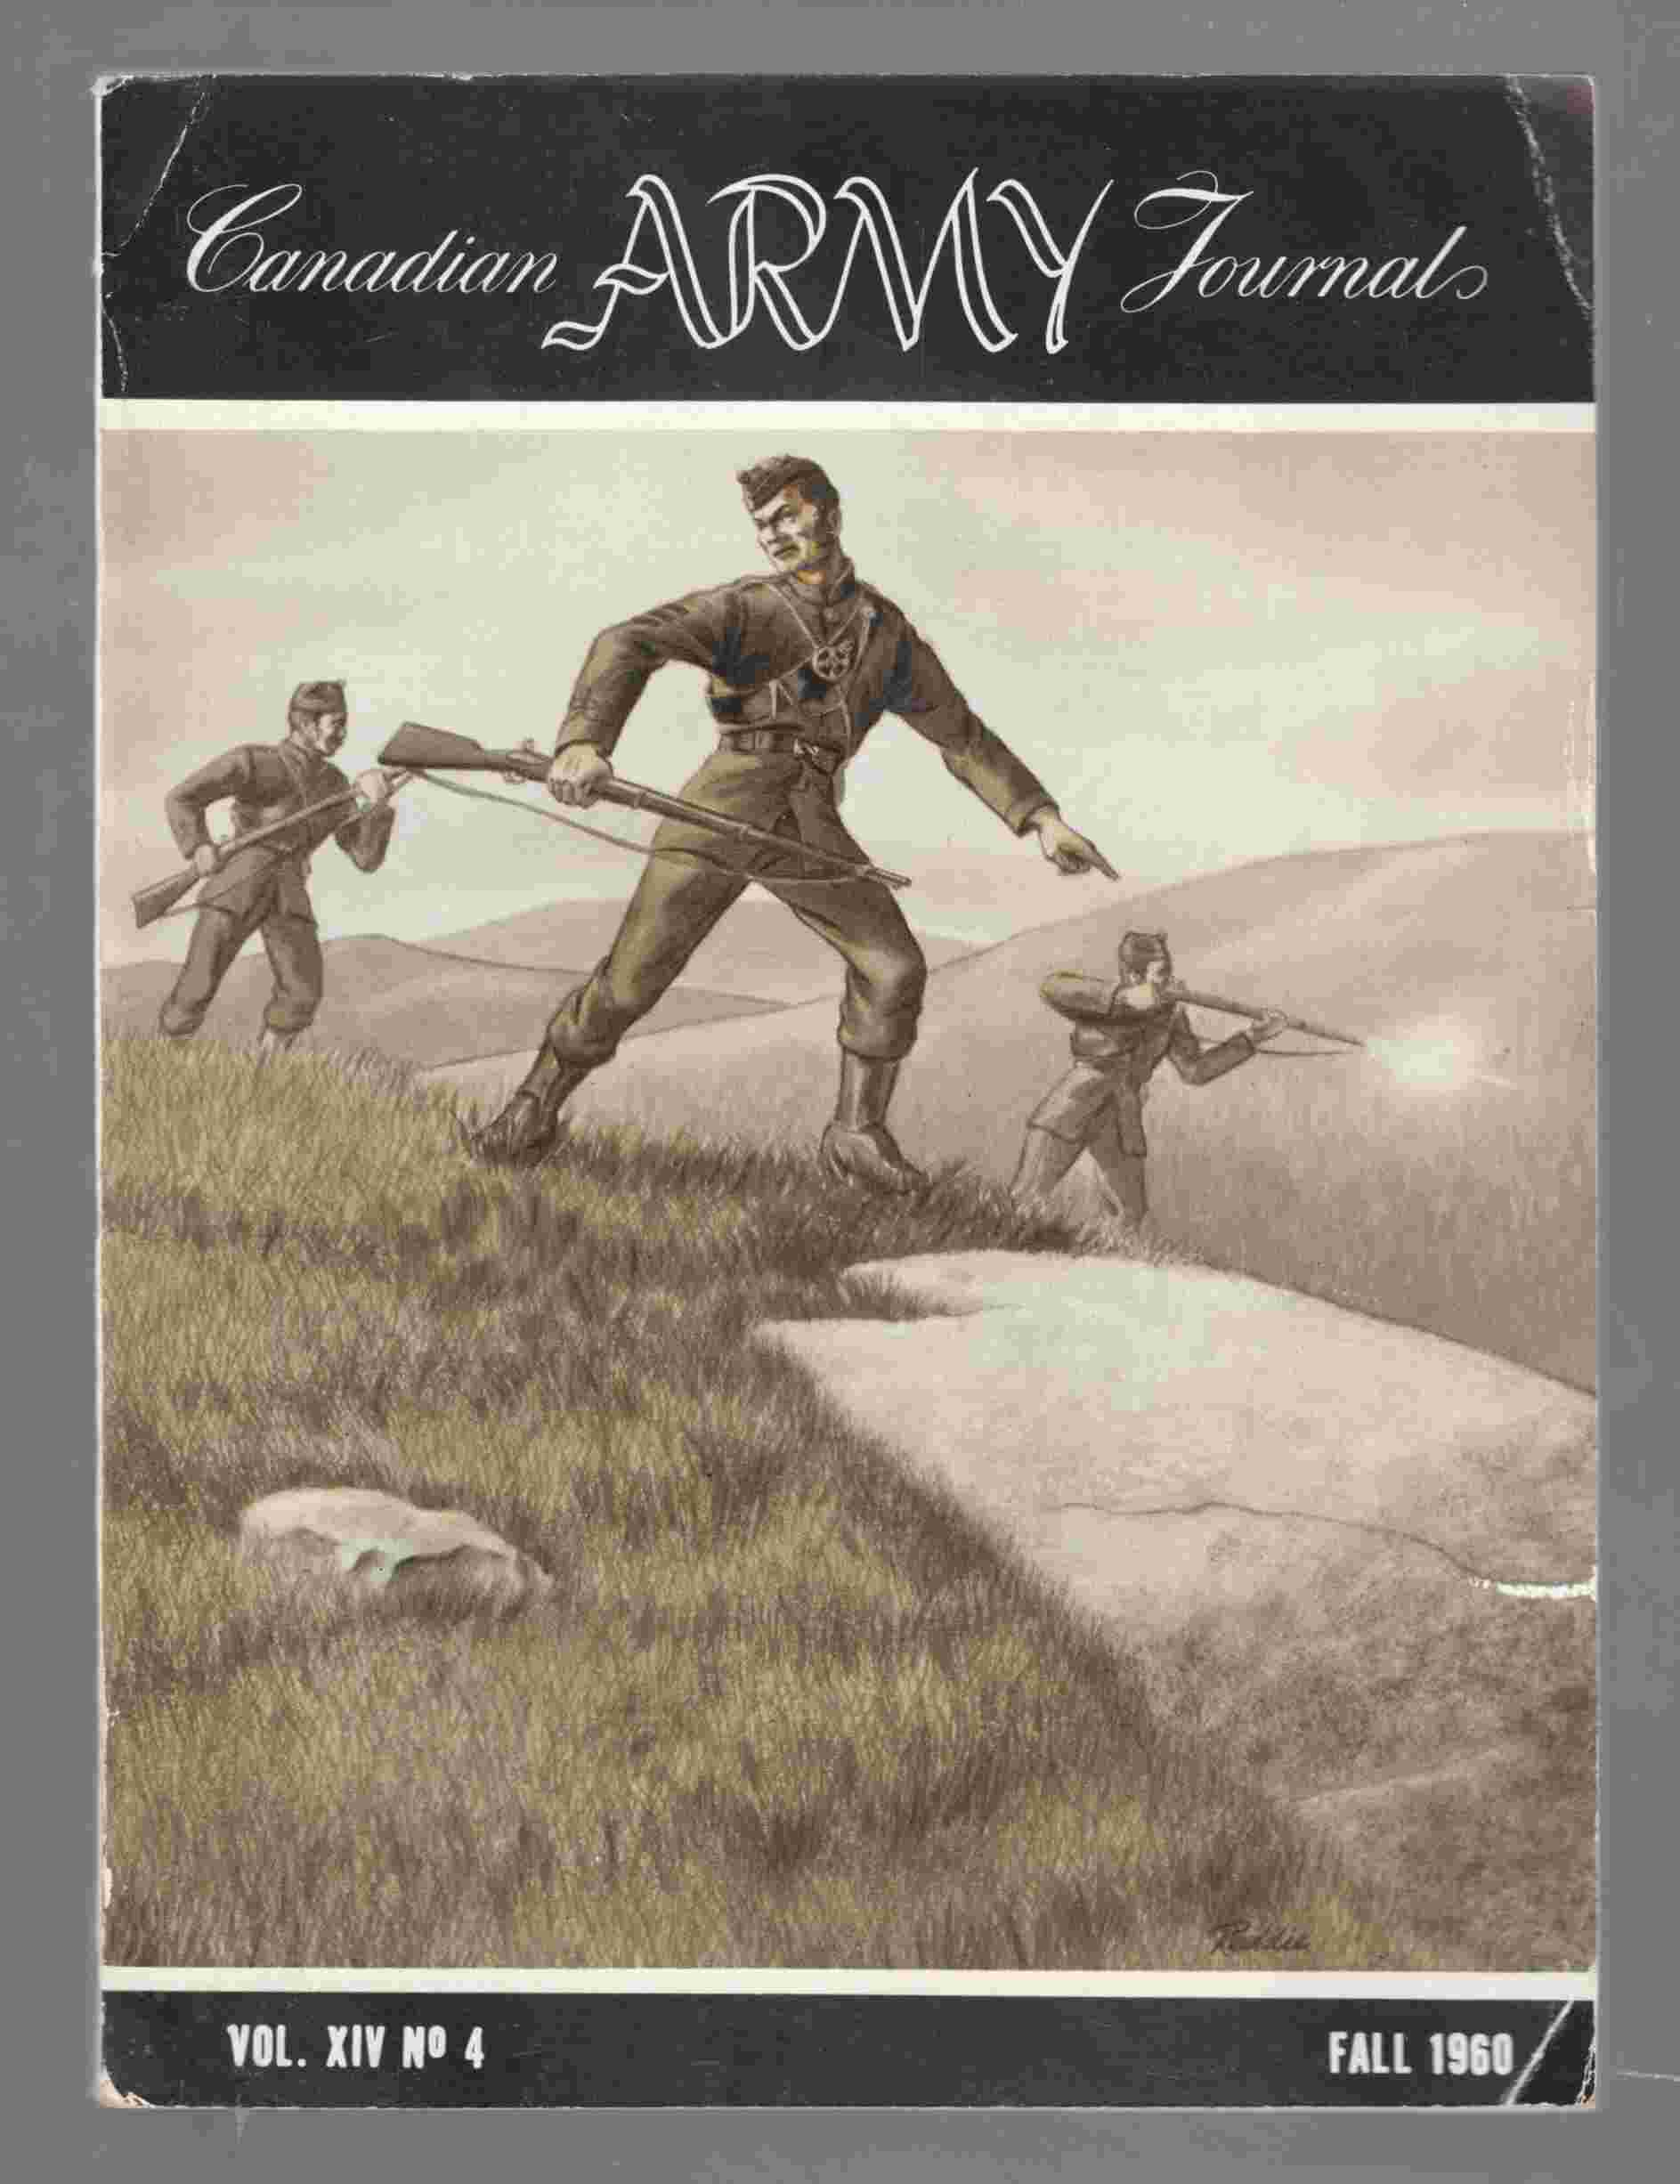 Image for Canadian Army Journal Vol. XIV No 4 Fall 1960